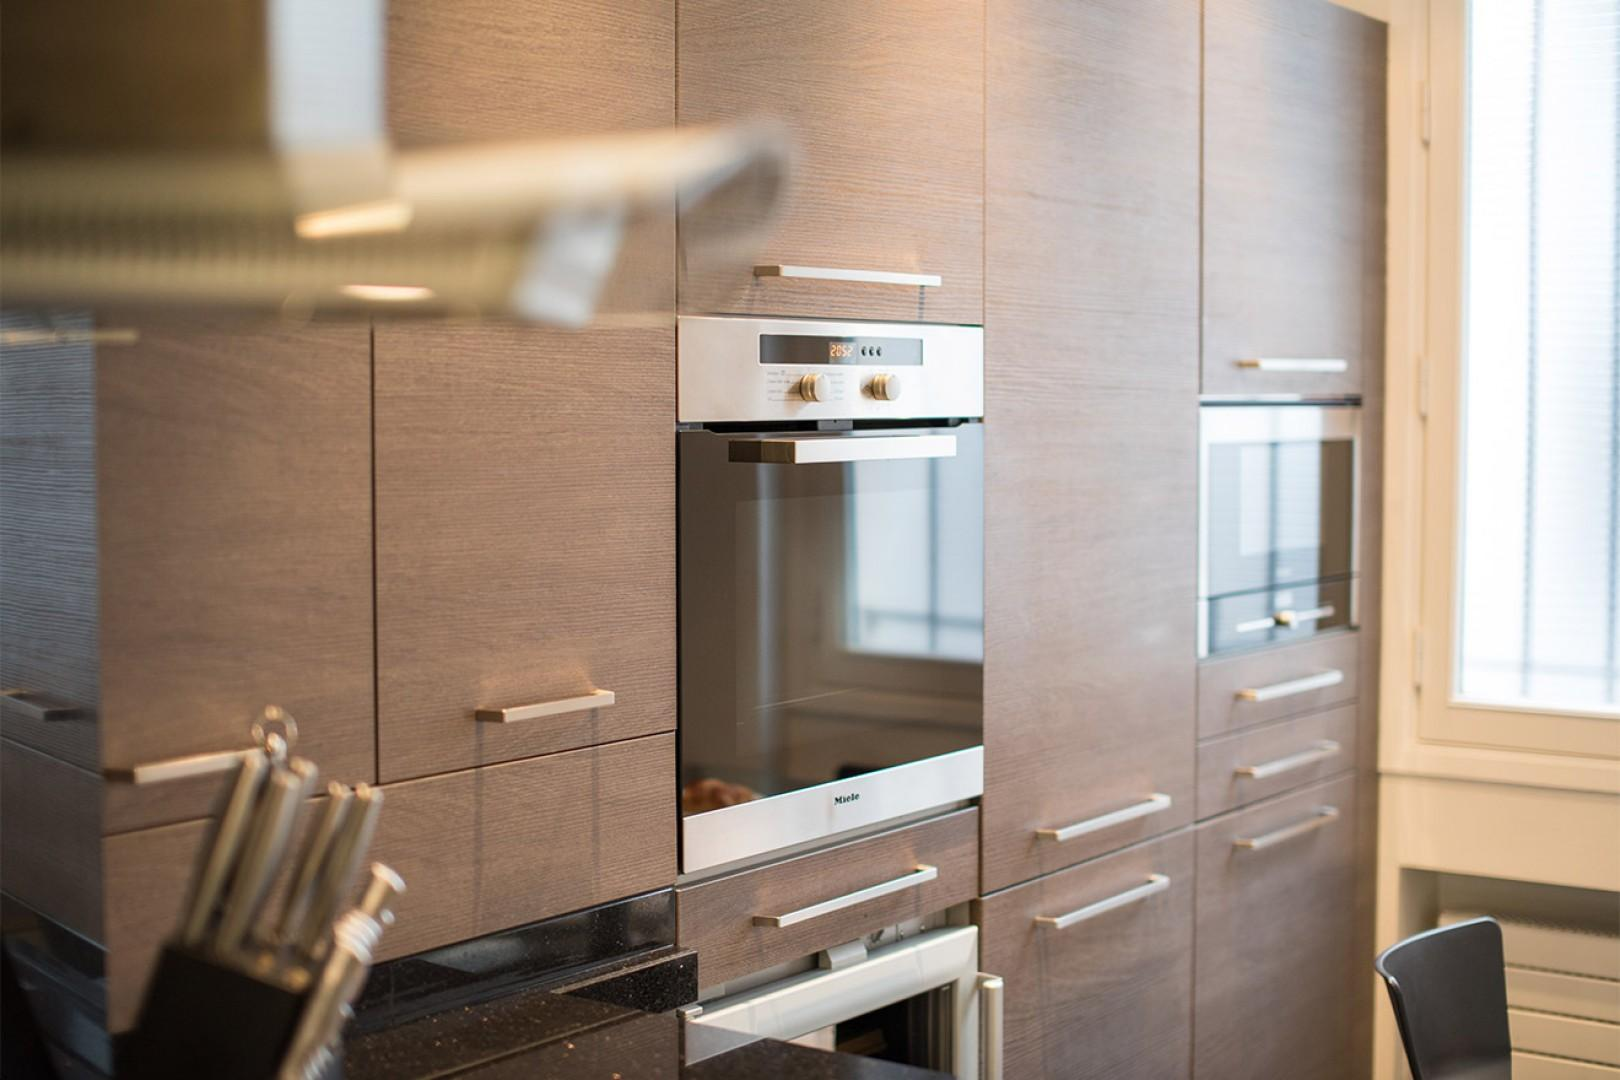 A high-end oven, microwave, fridge and wine fridge are built into the kitchen design.